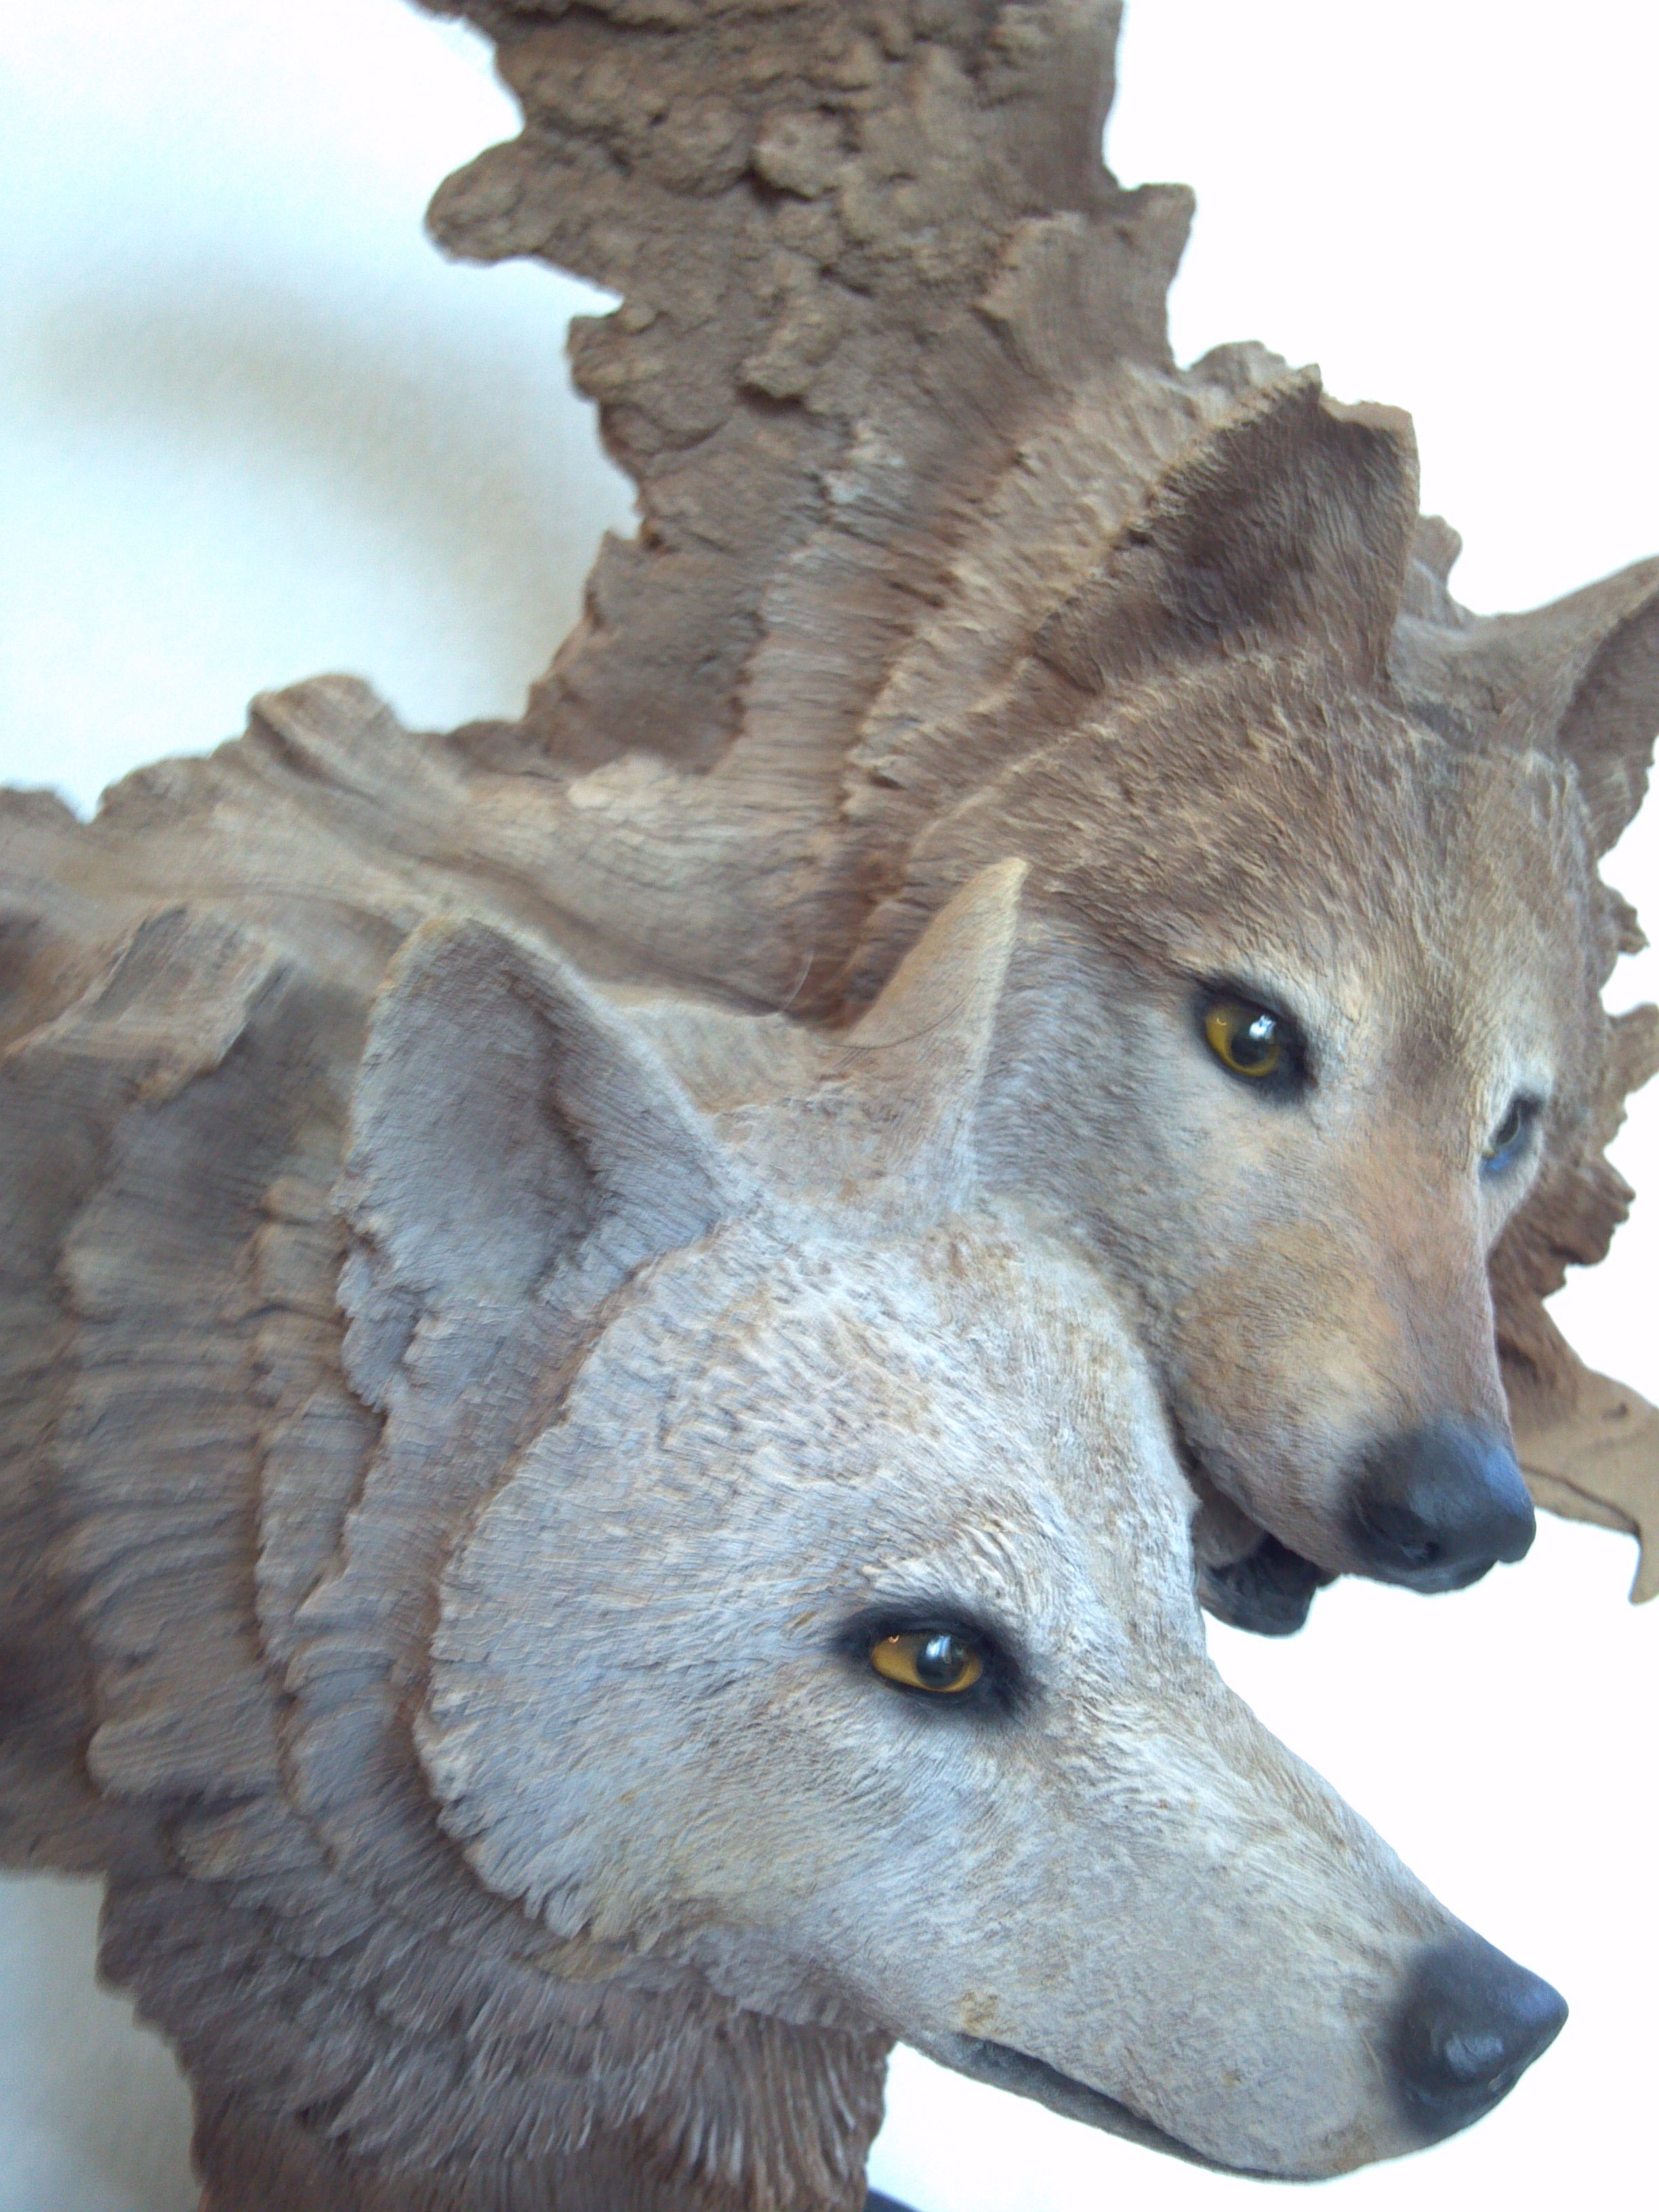 rick cain dual wolf sculpture the artist demonstrates great the artist demonstrates great attention to detail